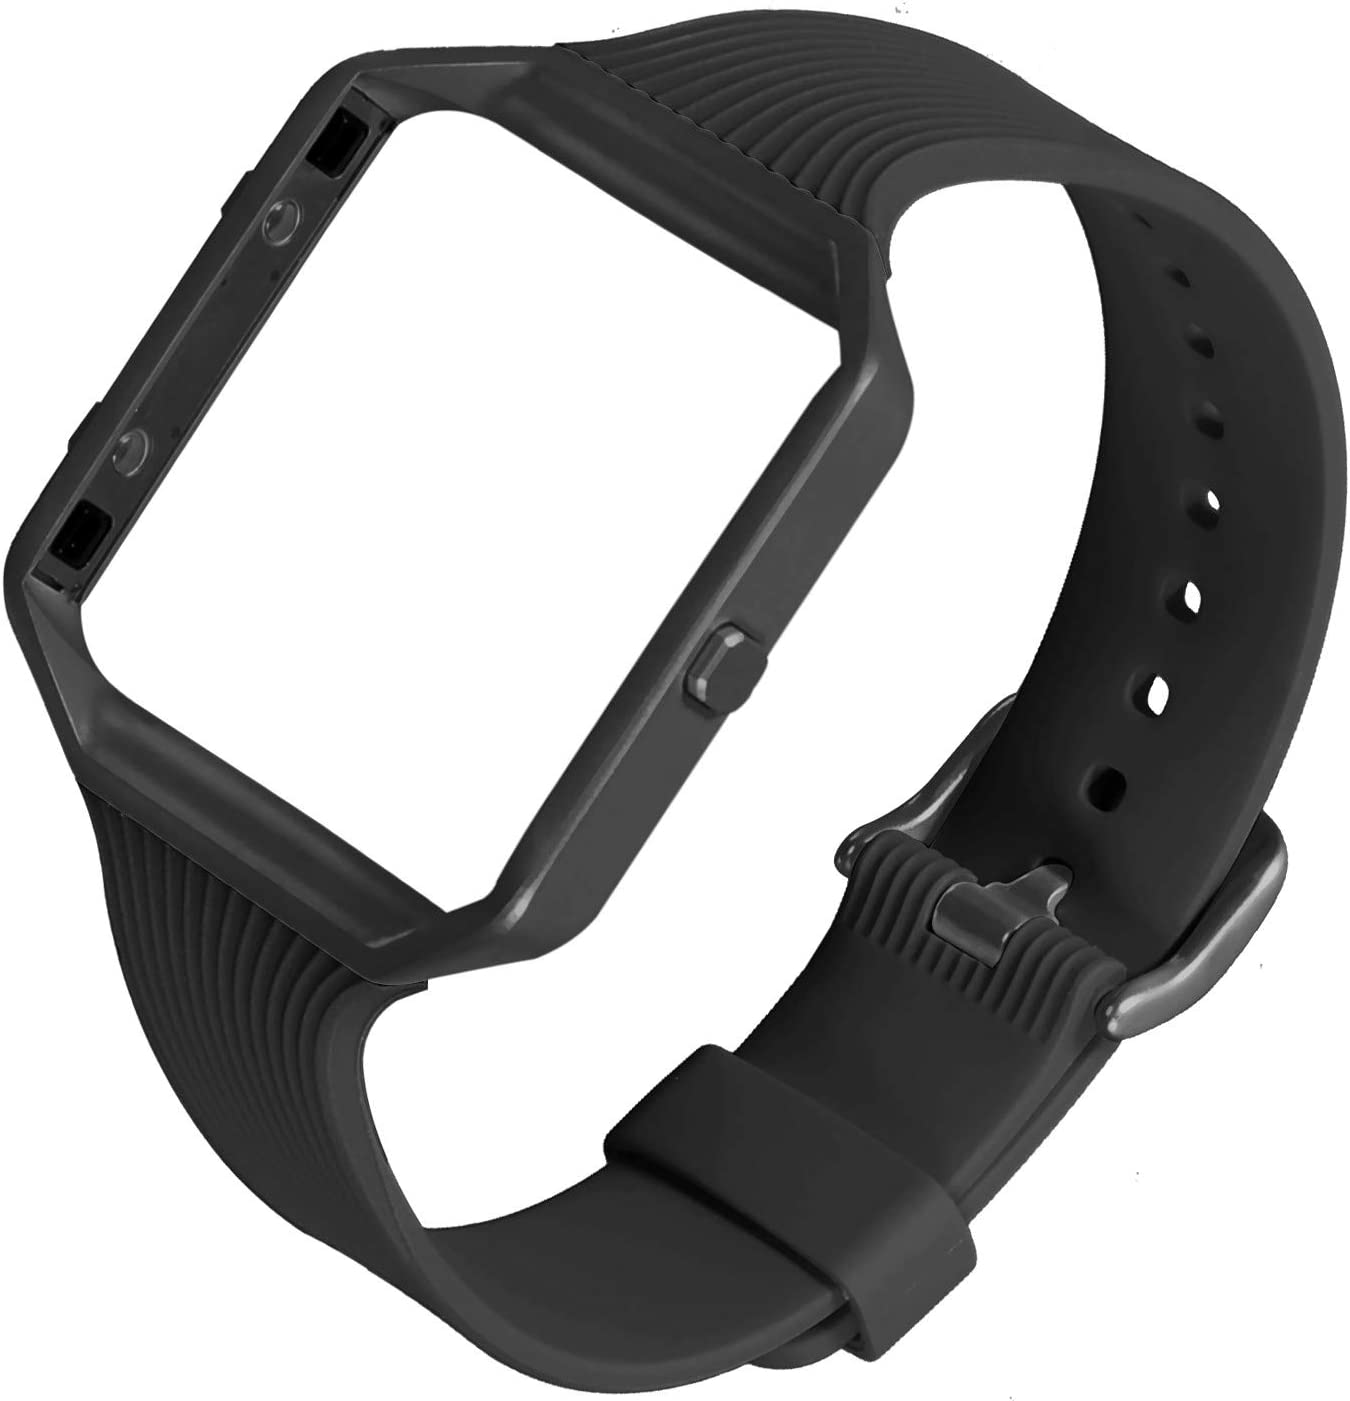 No Tracker Soft Slim Sport Silicone Replacement Wristband Compatible with Fitbit Blaze Bracelet for Women Men ESeekGo Compatible with Fitbit Blaze Bands with Metal Frame